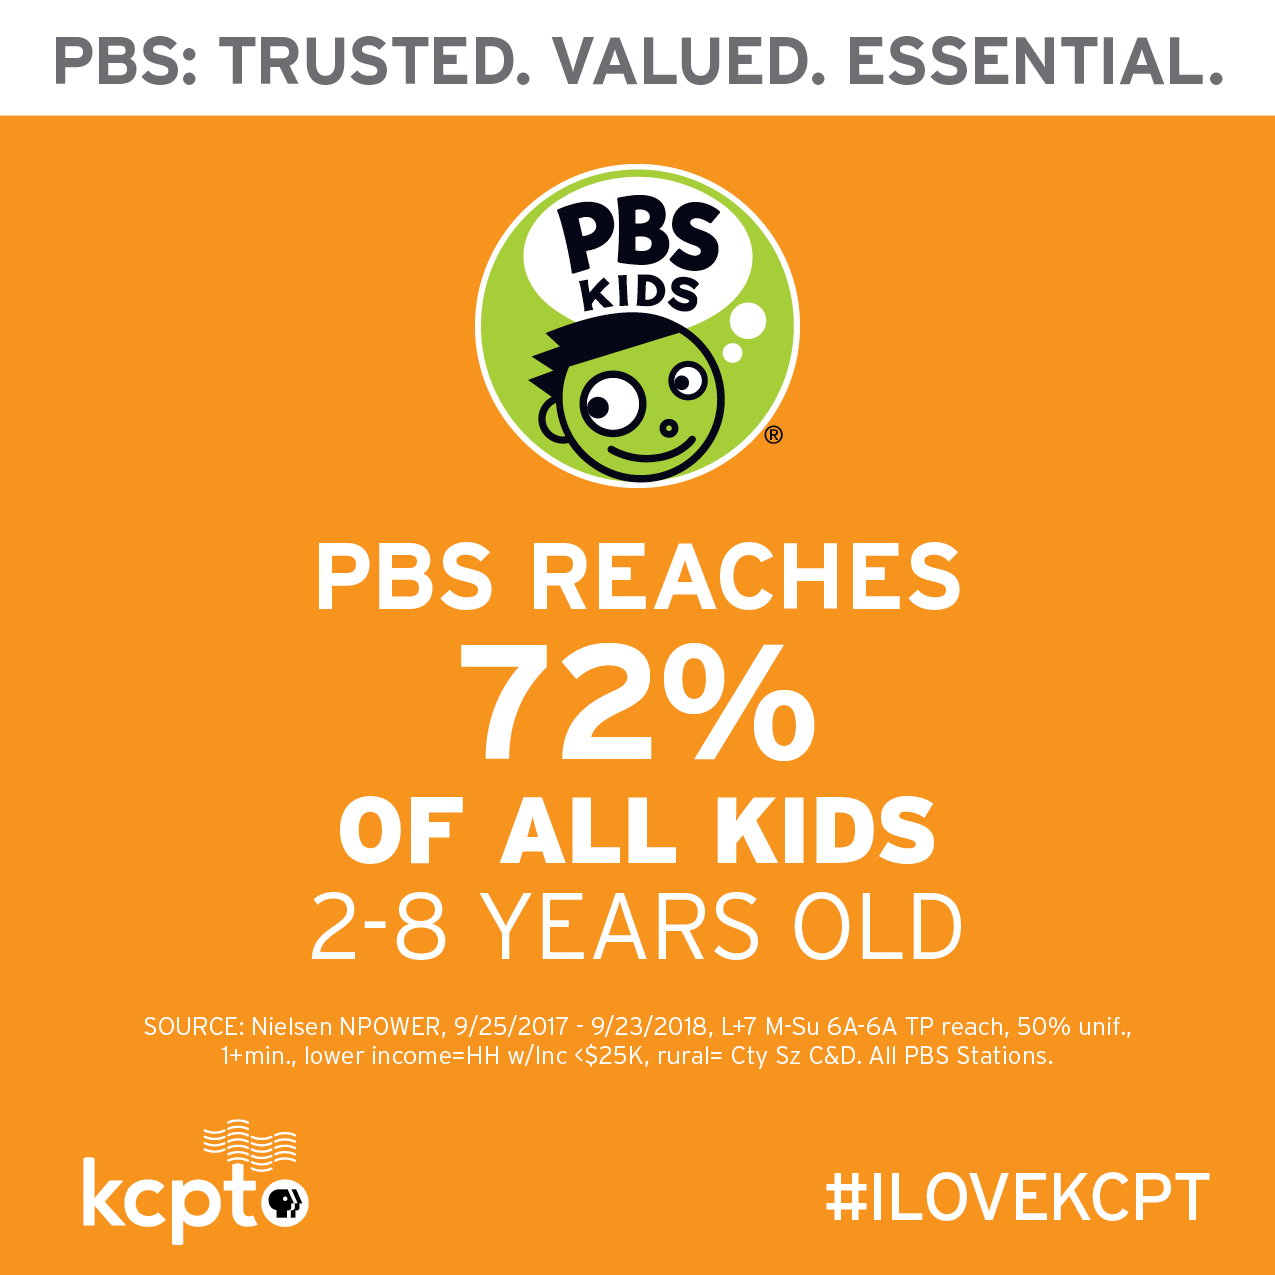 PBS Kids reaches 72 percent of all two-to-eight-year-olds.